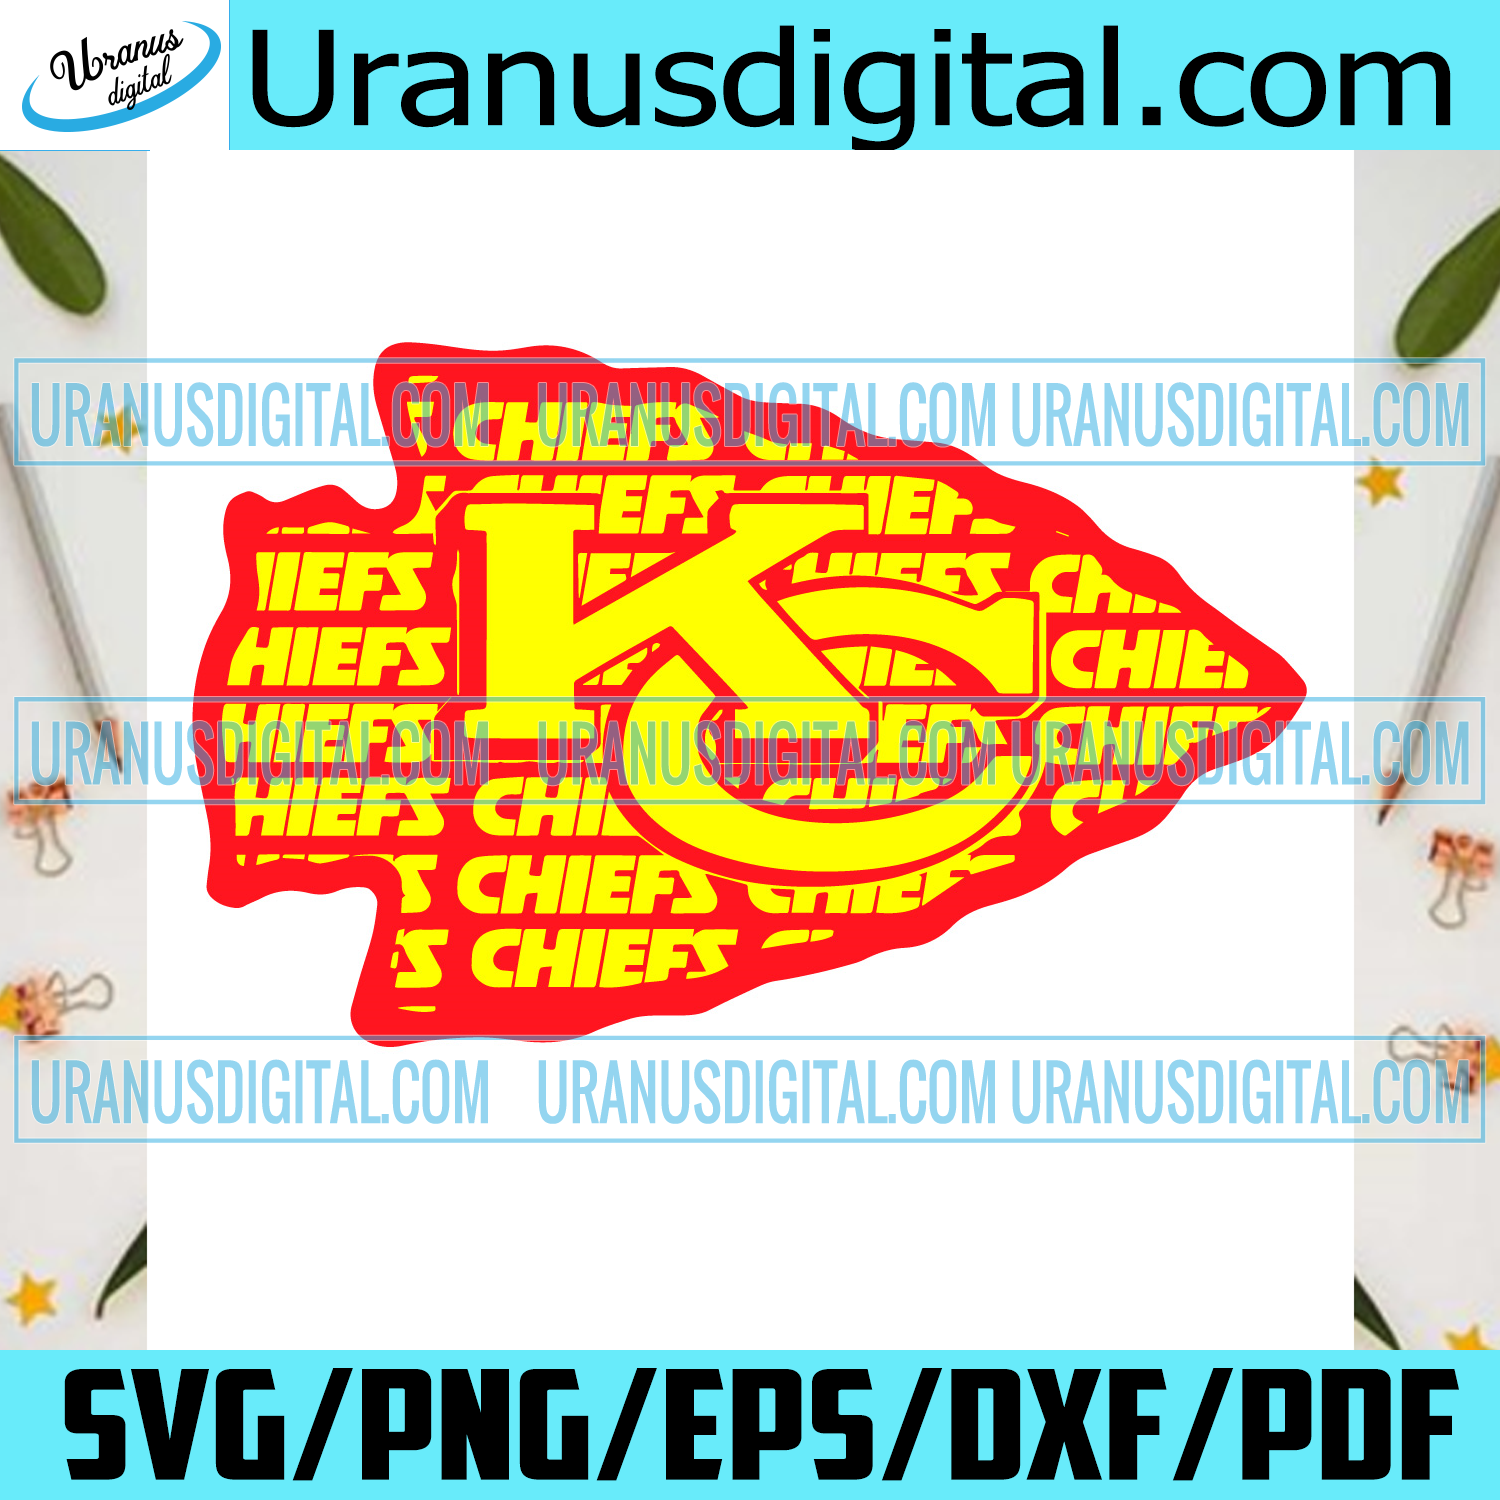 KC Chiefs Logo svg, Sport Svg, Svg, Kansas City Chiefs Svg, Kansas City Chiefs Football Team Svg ,Kansas City Chiefs Logo Svg, Kansas City Chiefs Gifts Svg, KC Chiefs Svg, Chiefs Fan Svg, Chiefs Love Svg, NFL Svg, Super Bowl Svg, Football Svg